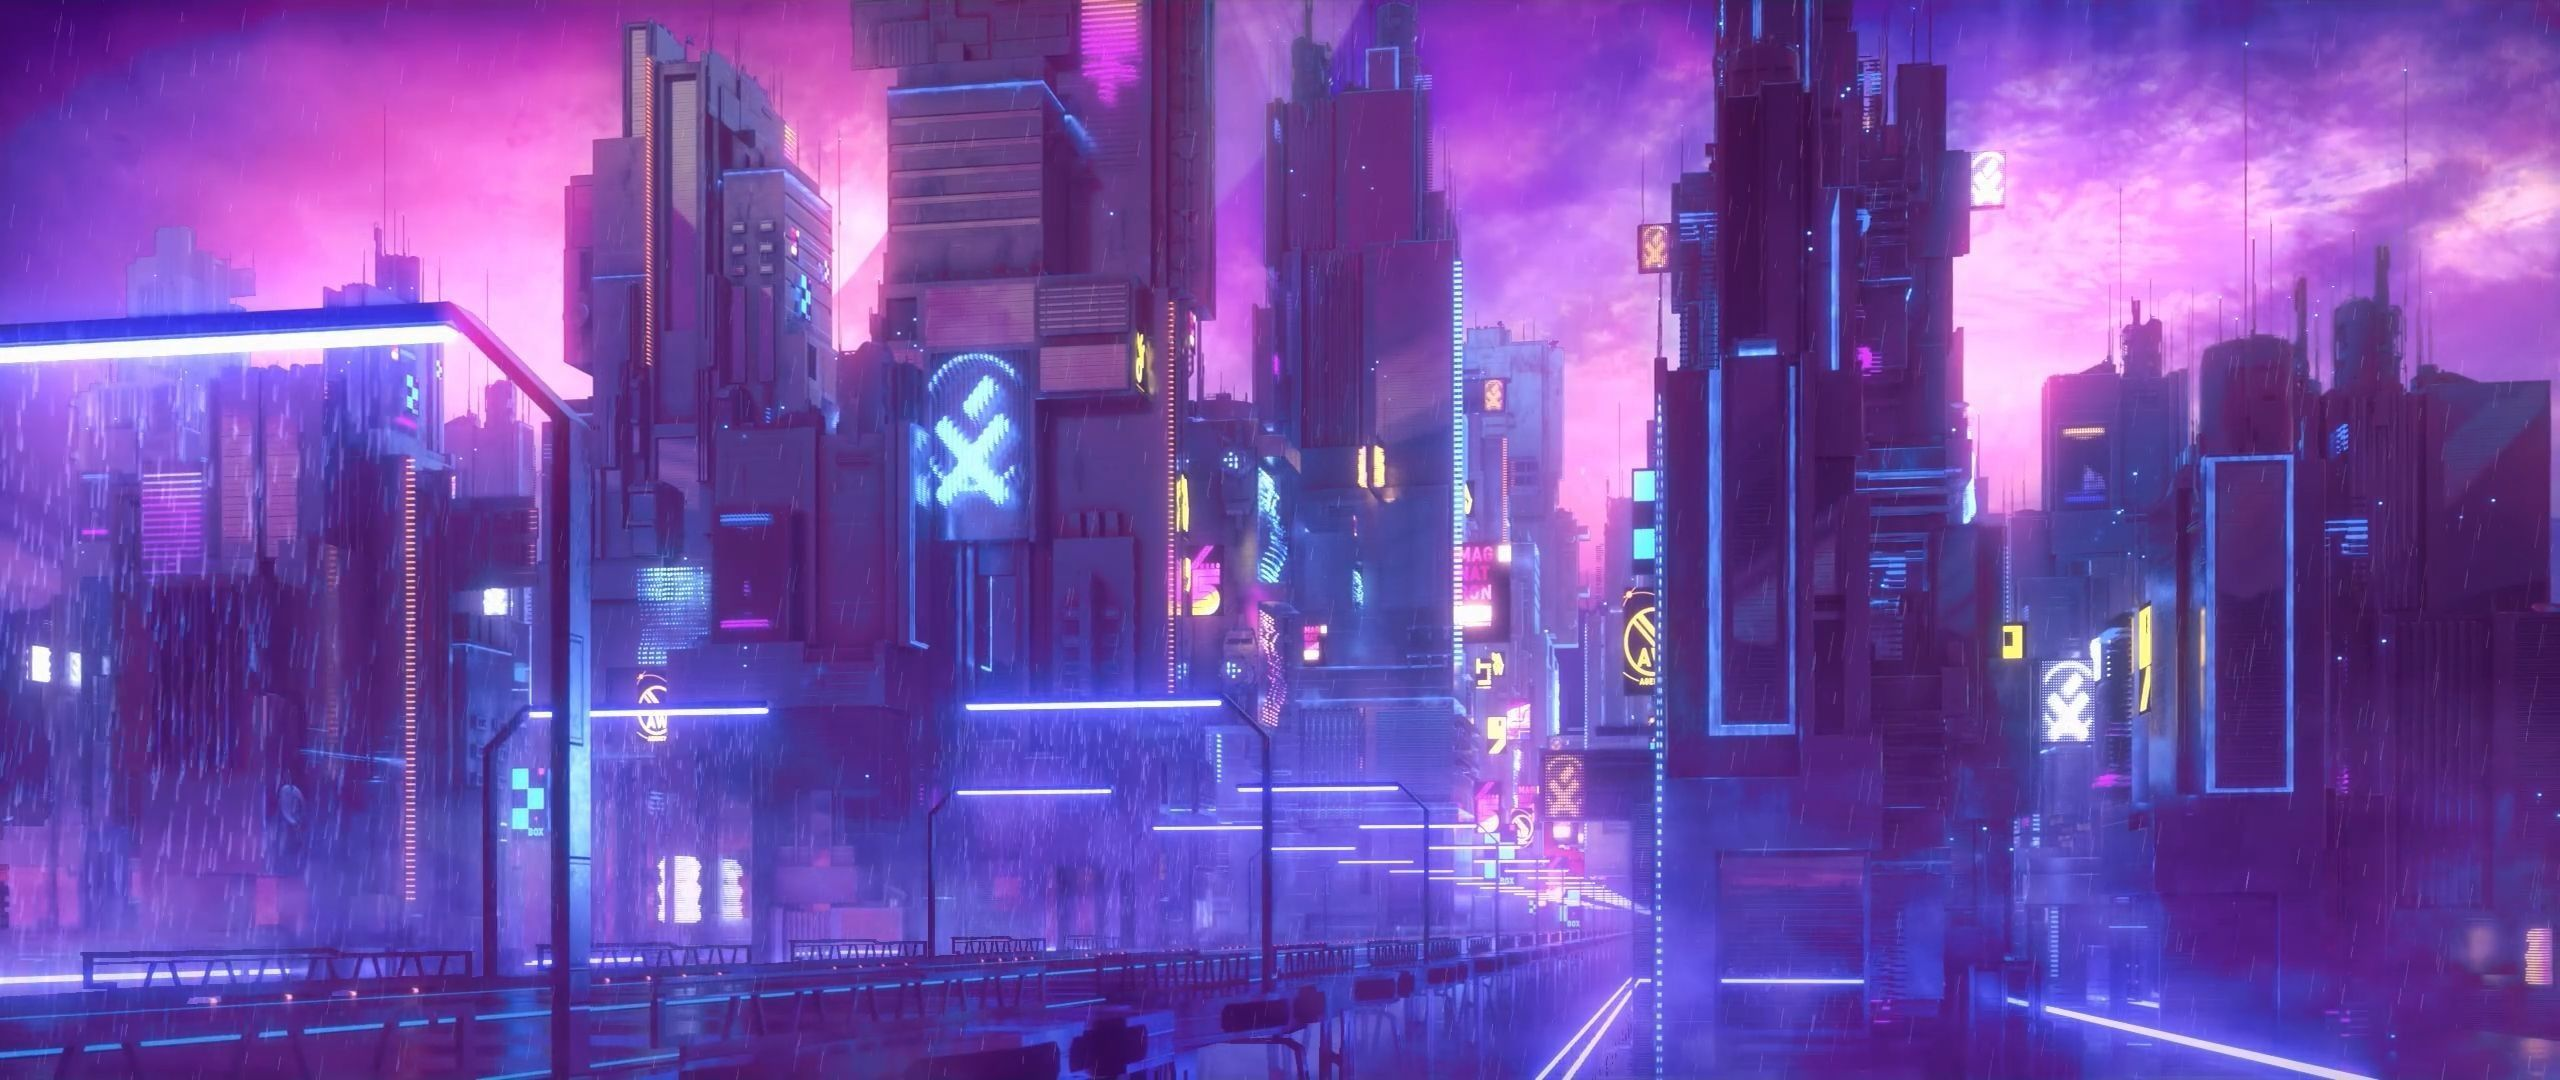 Cyberpunk Synthwave Wallpapers Top Free Cyberpunk Synthwave Backgrounds Wallpaperaccess